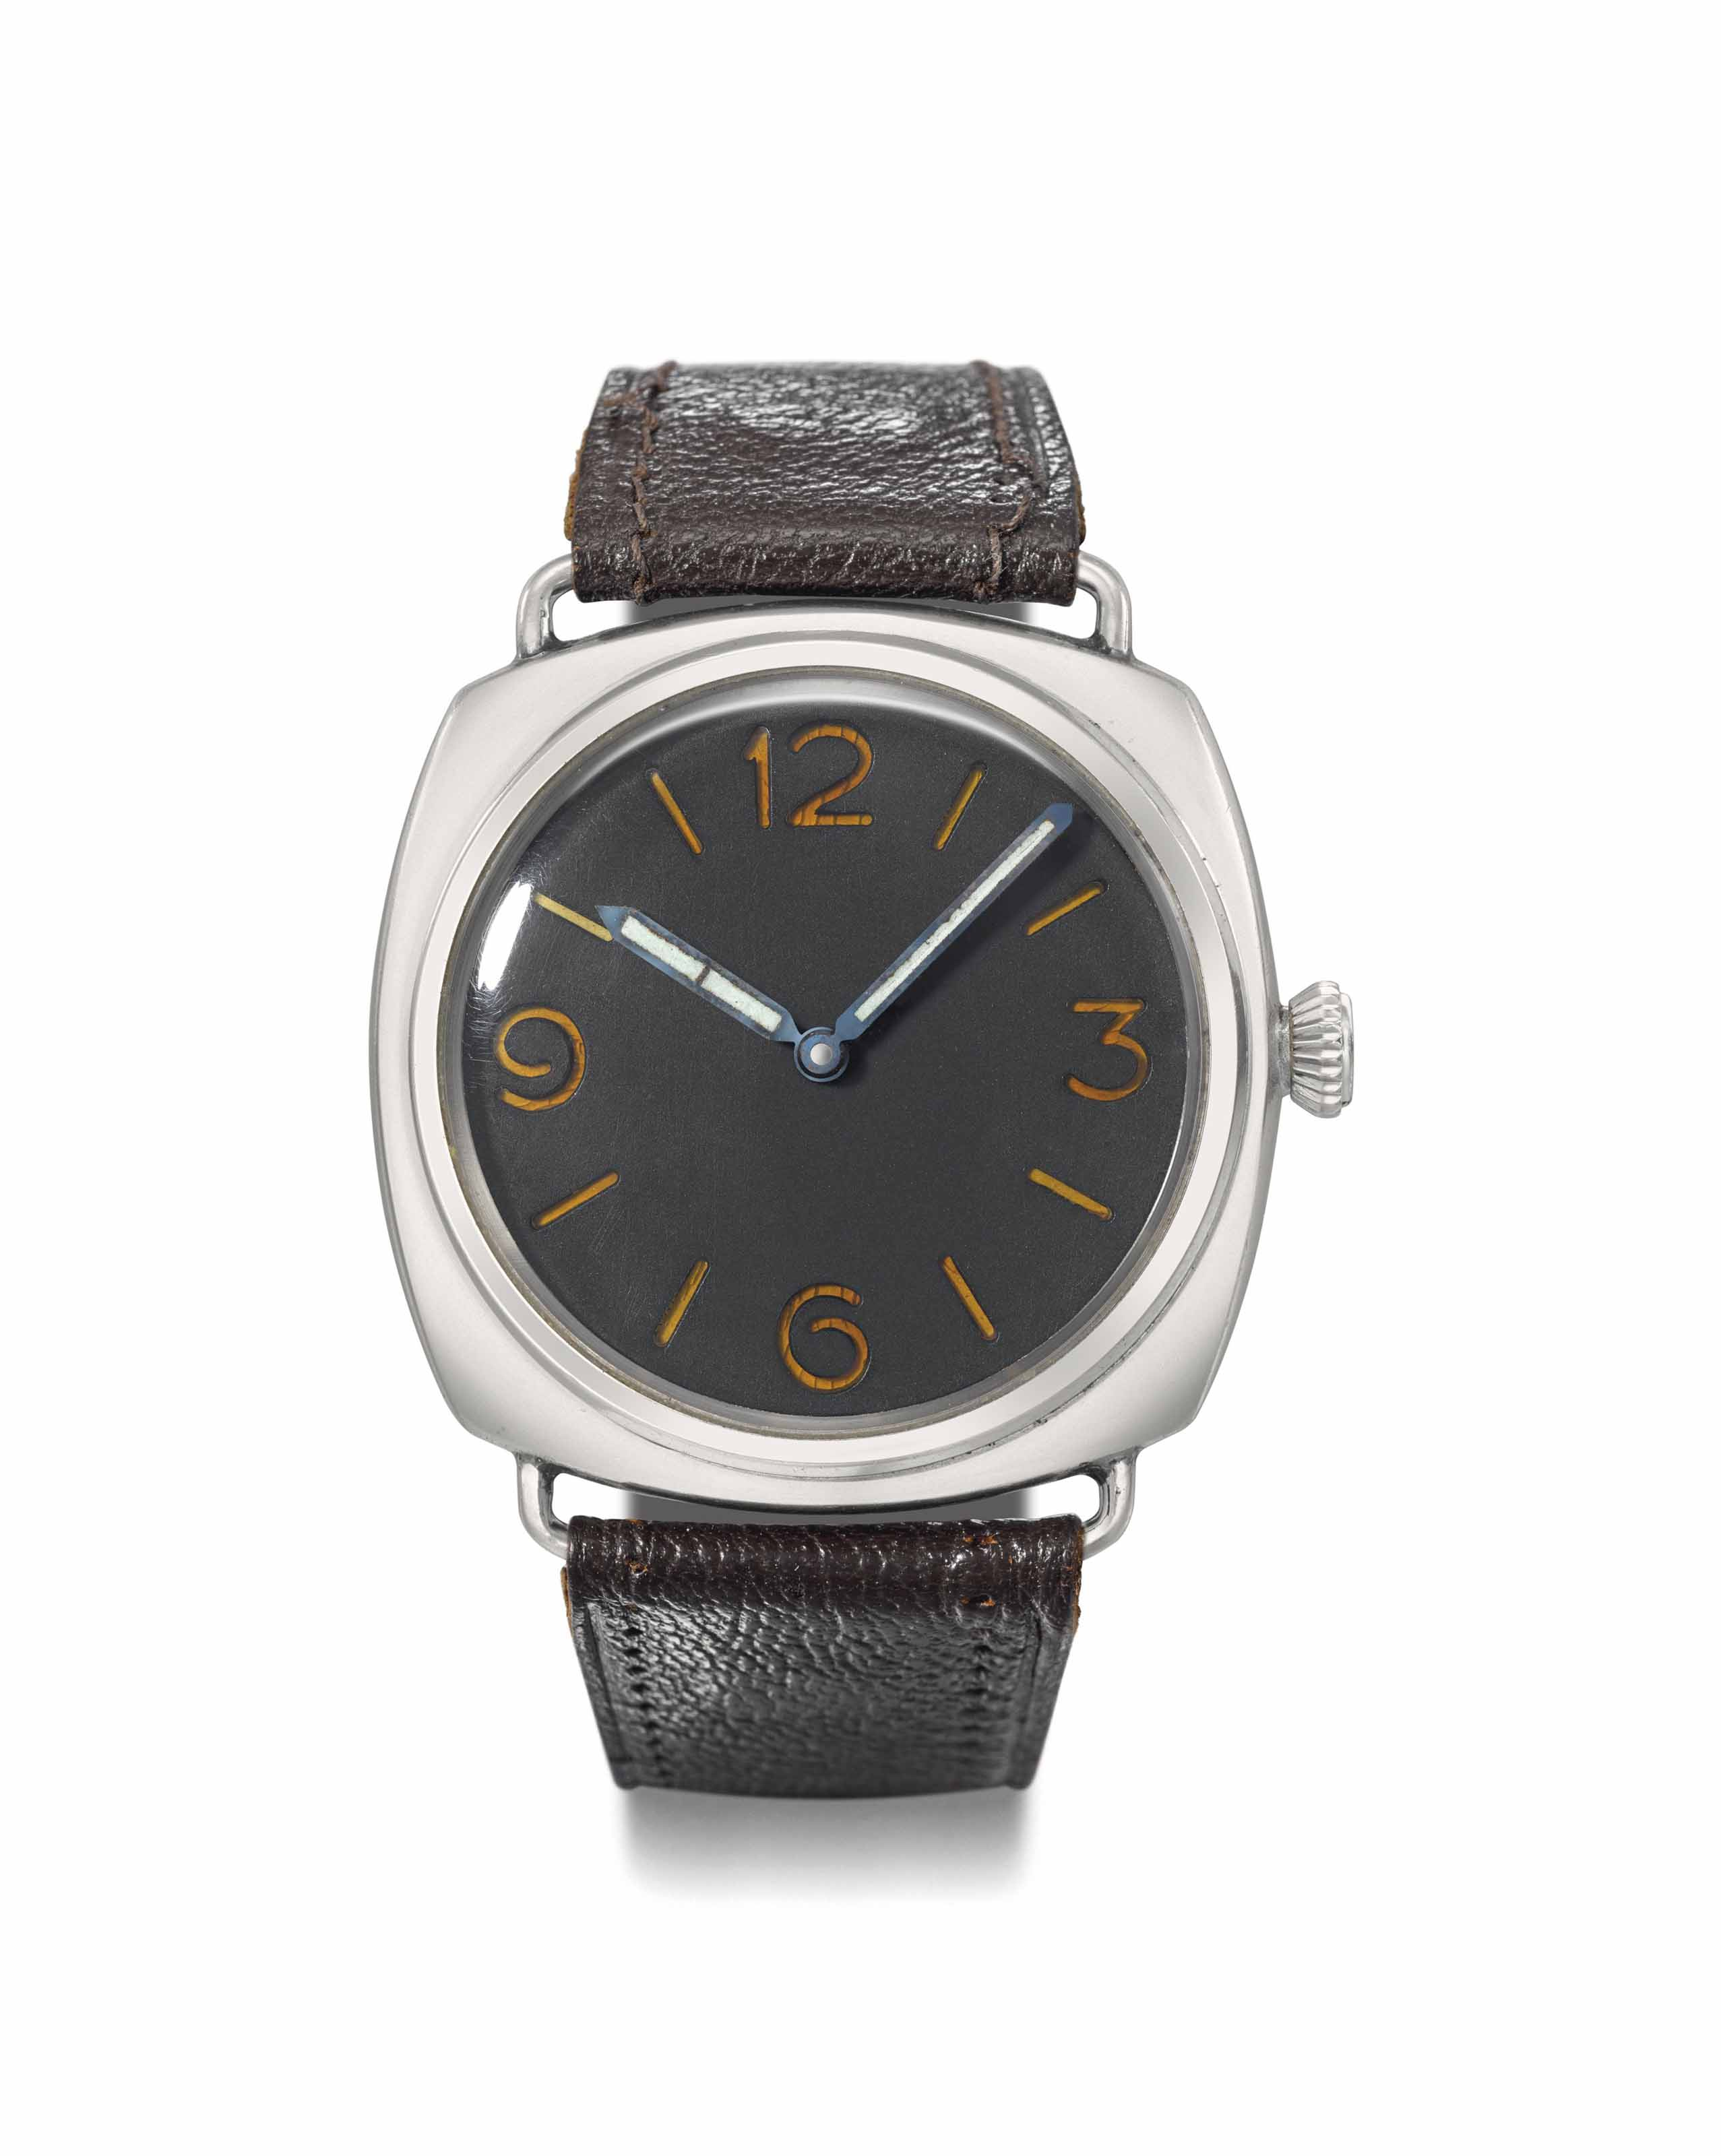 Rolex made for Officine Panerai. A rare and large stainless steel cushion-shaped diver's wristwatch